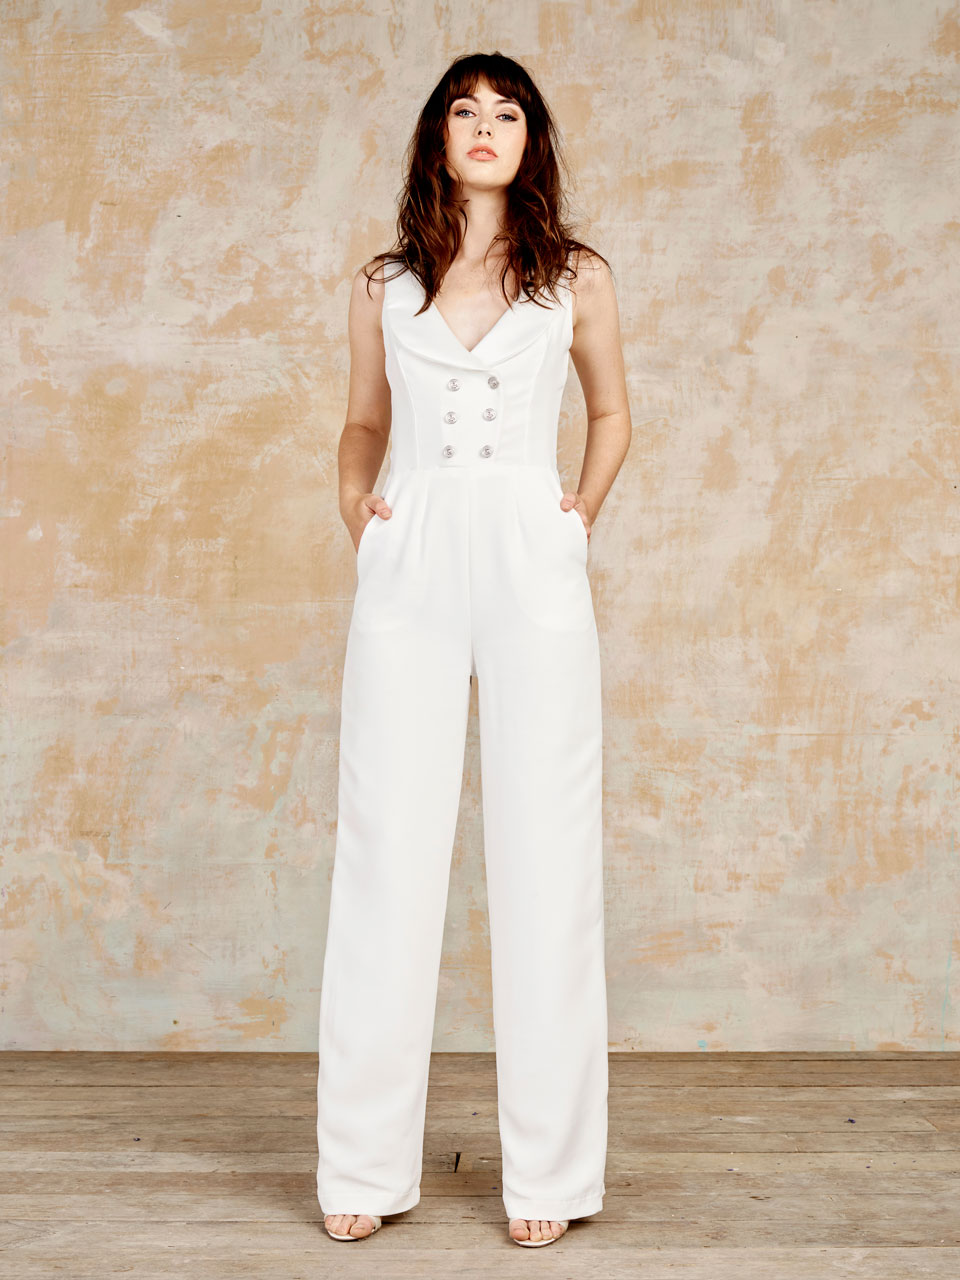 Wedding Bridal Jumpsuits stunning unique bridal jumpsuits from house of ollichon rock laird